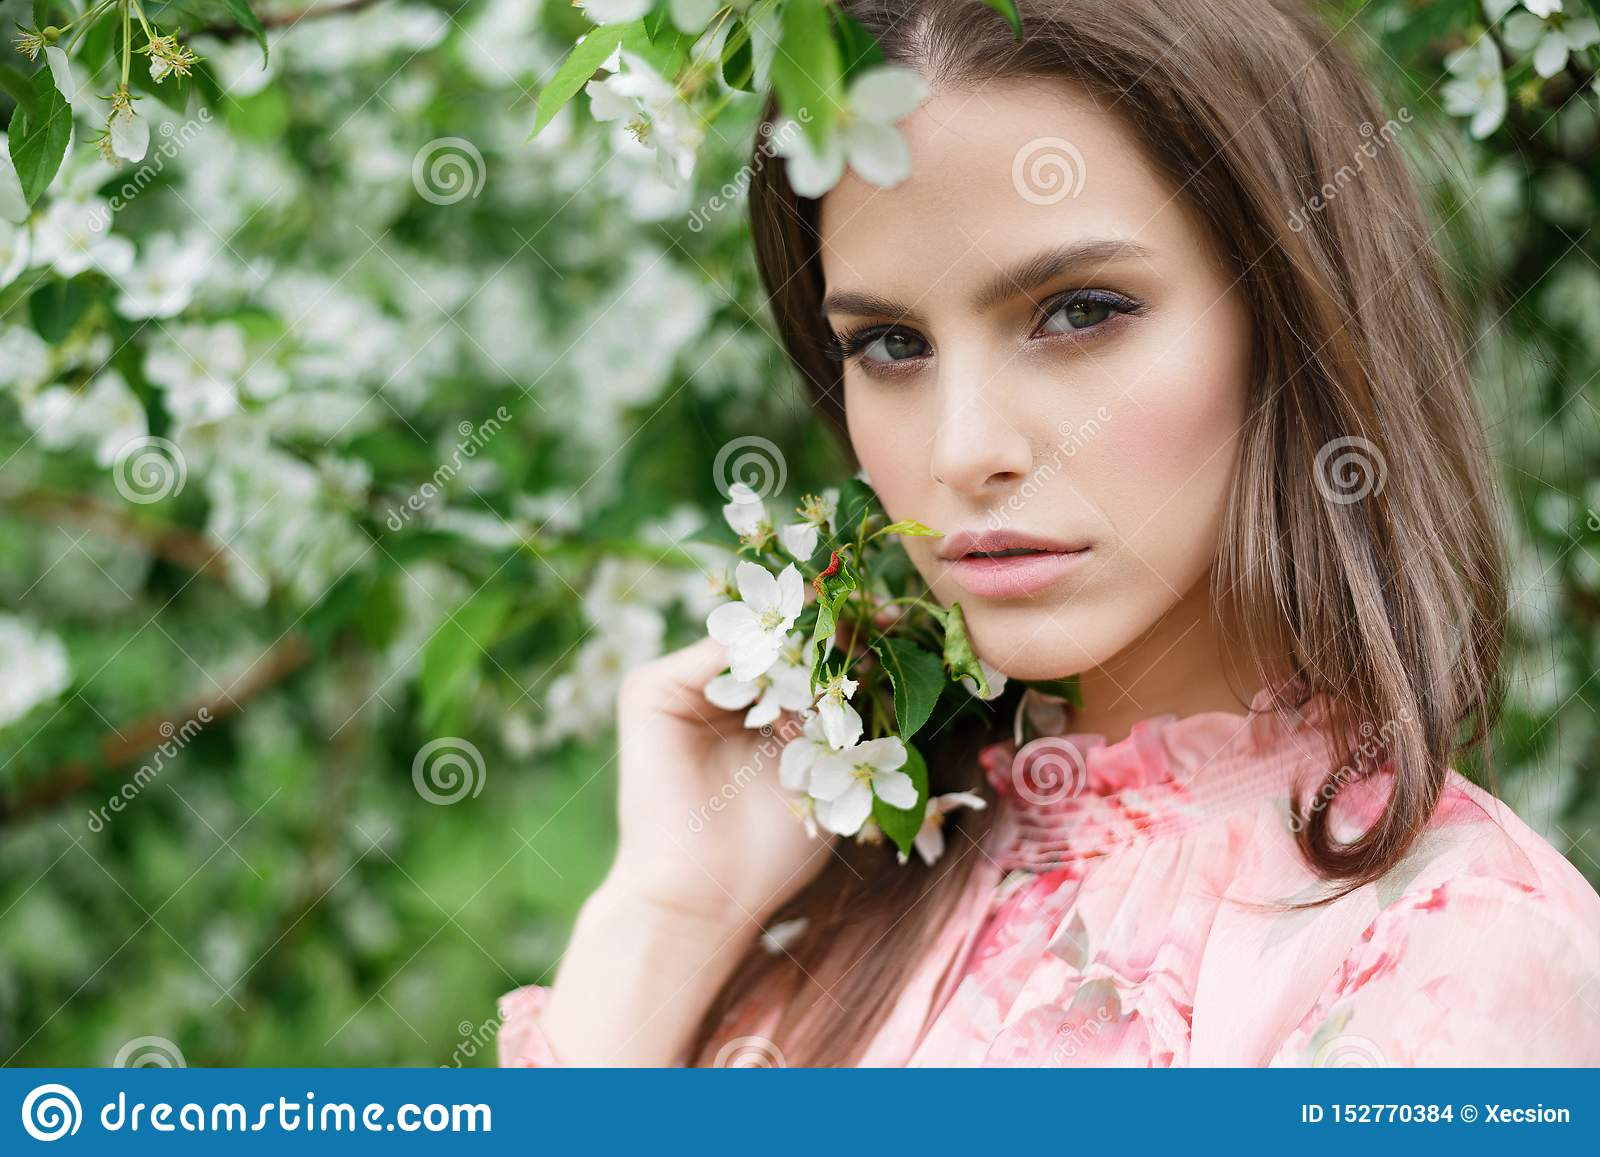 Close-up portrait of a beautiful girl in flowering trees. Flowering fruit trees